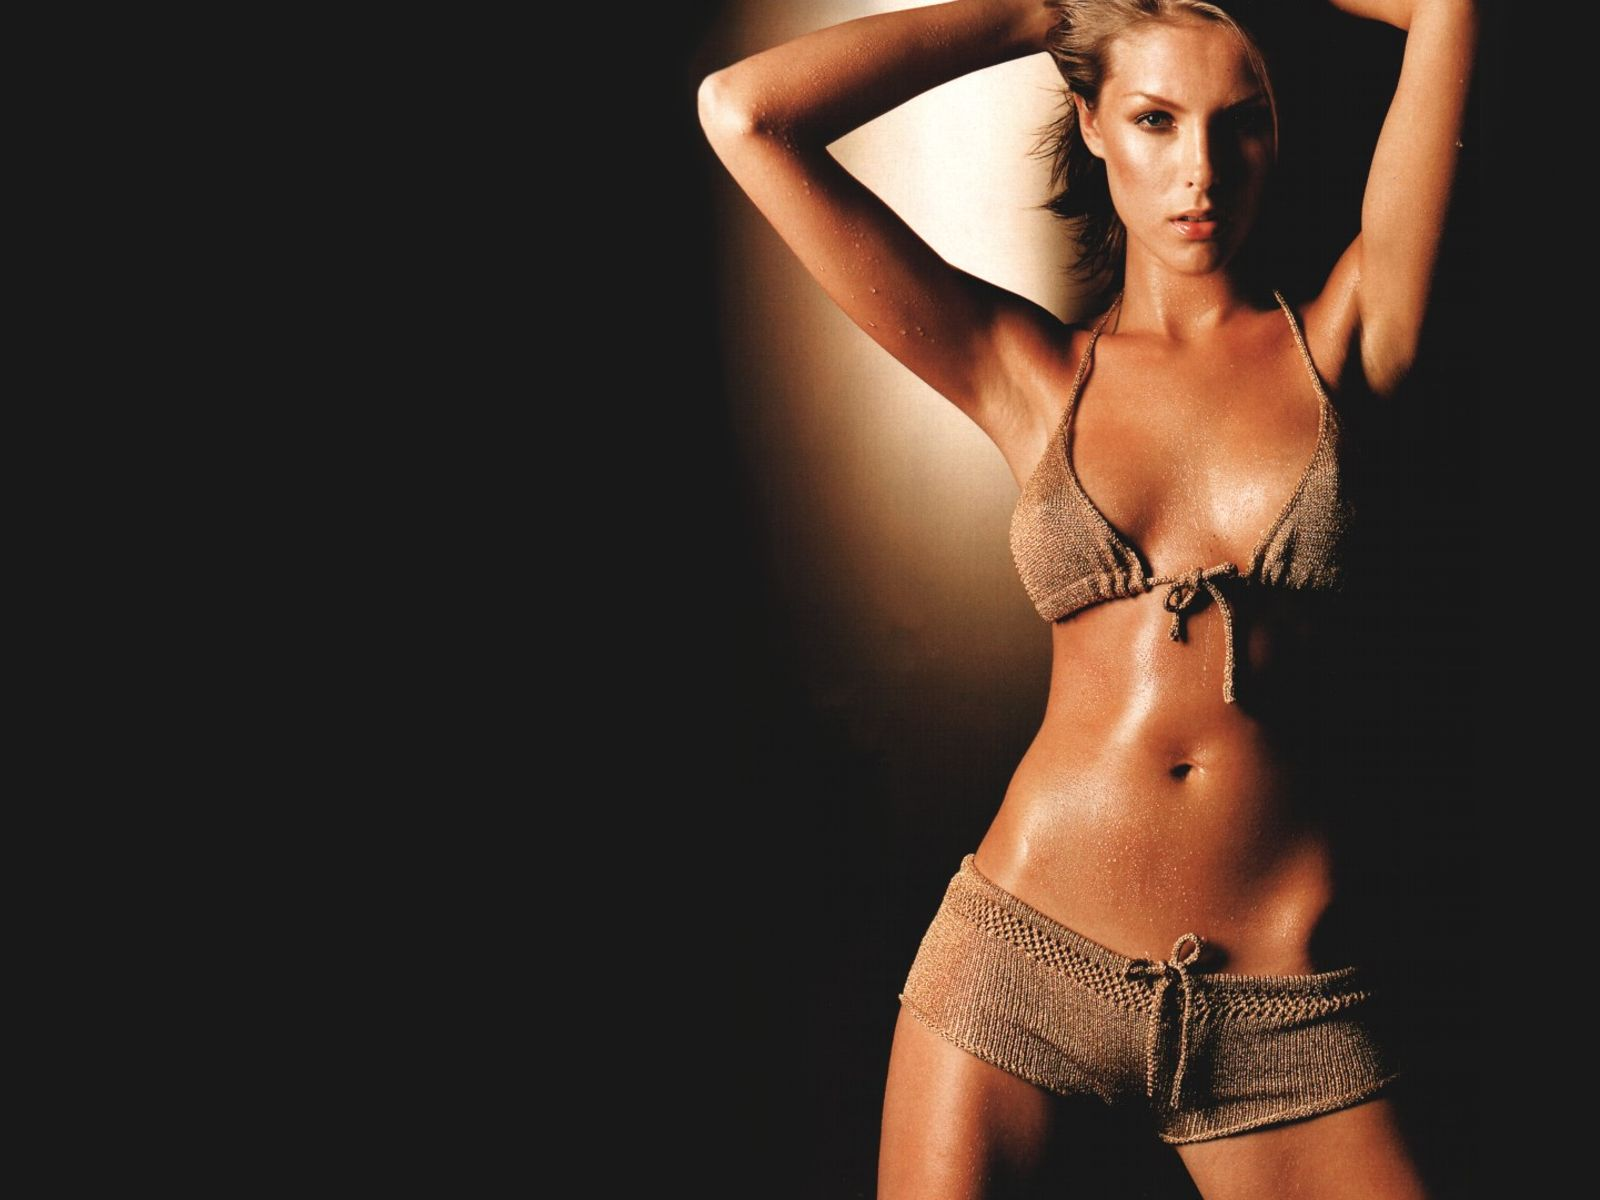 100 Pictures of Ana Hickmann Hot